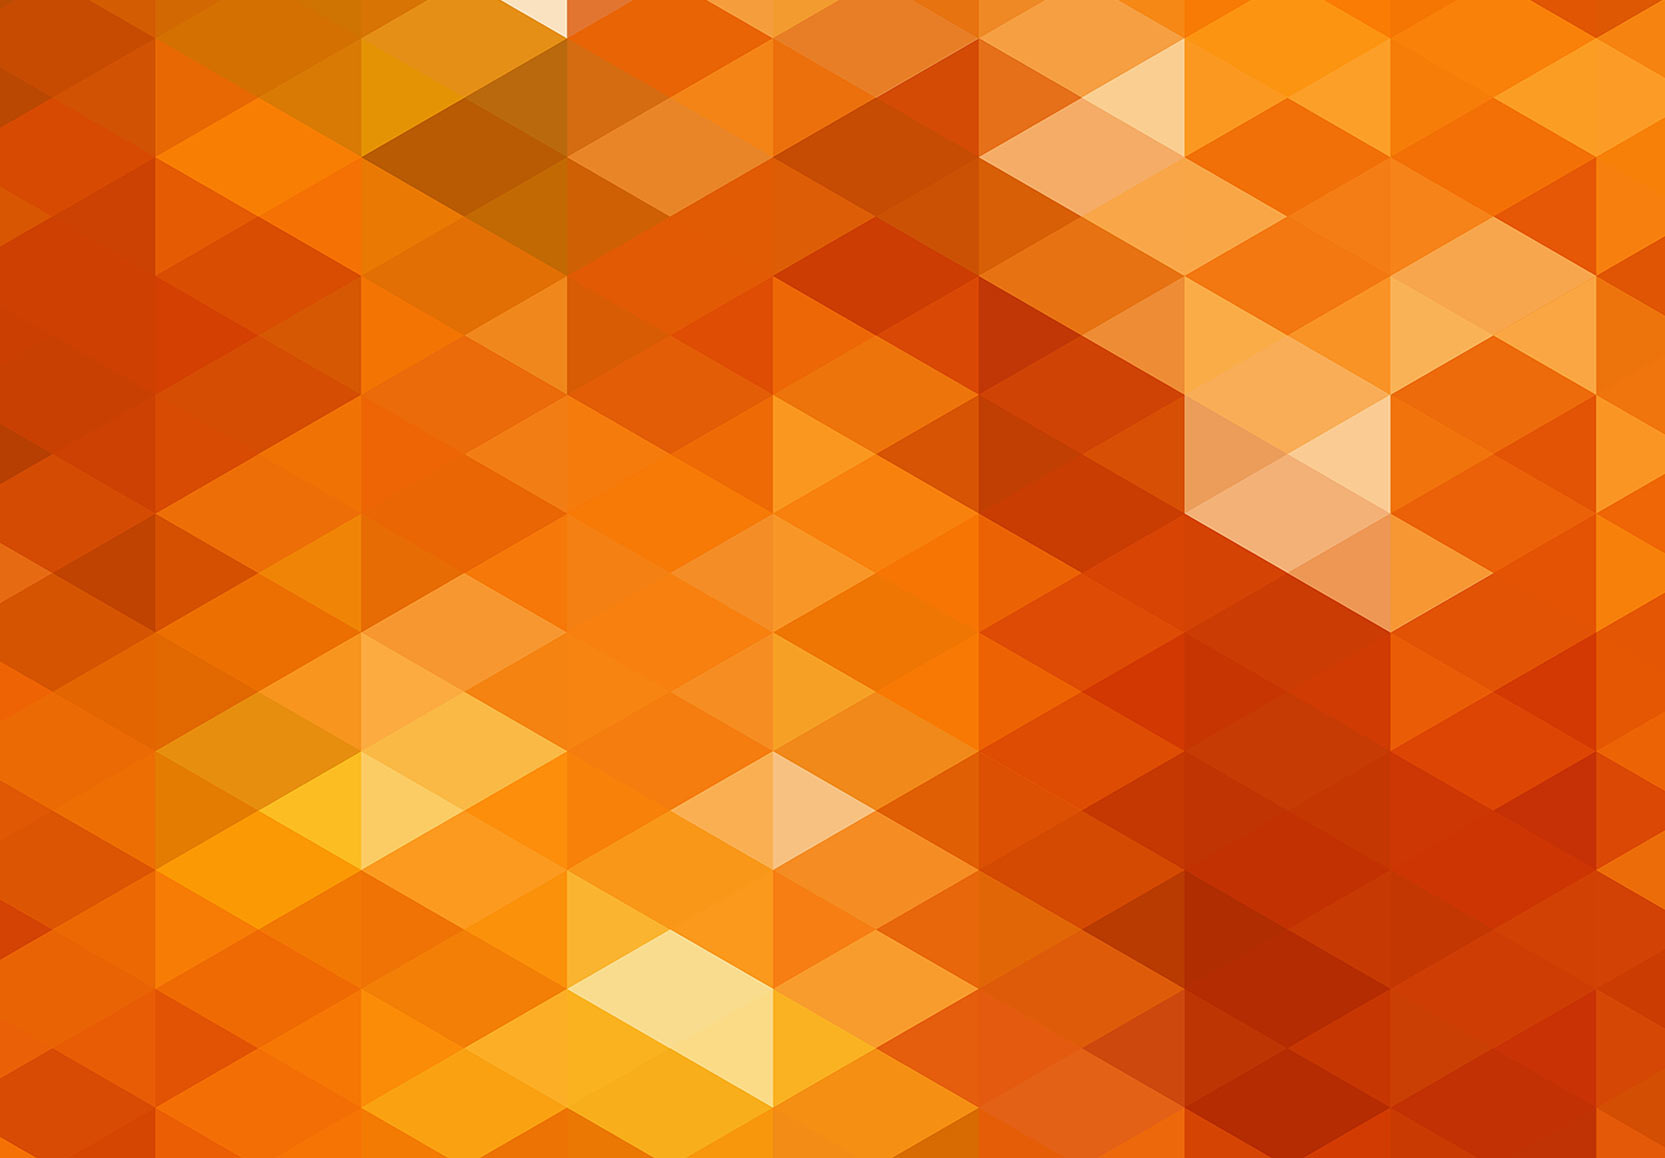 Orange Shapes